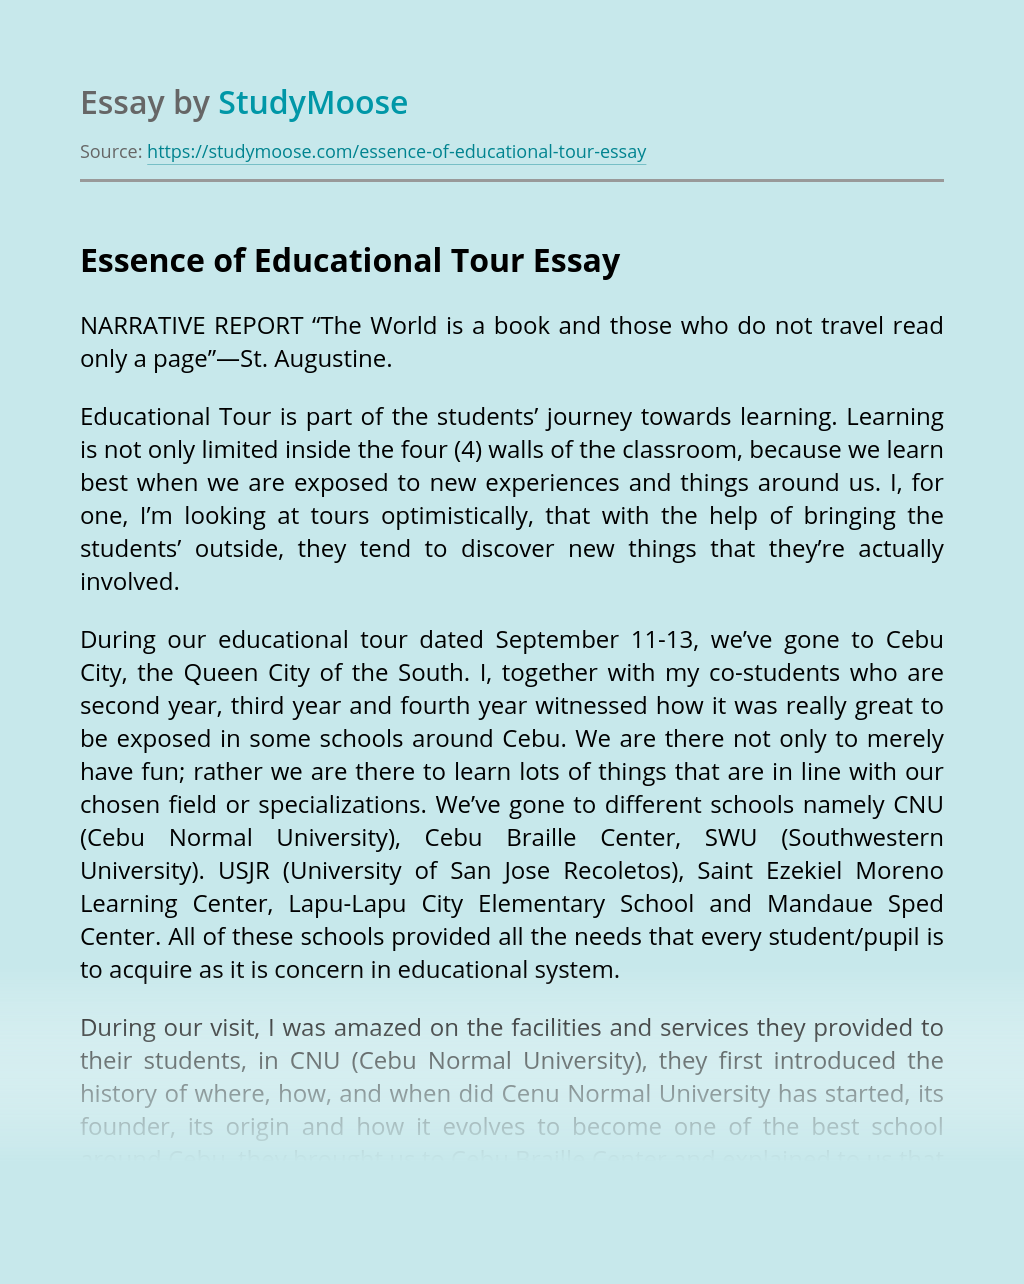 Essence of Educational Tour